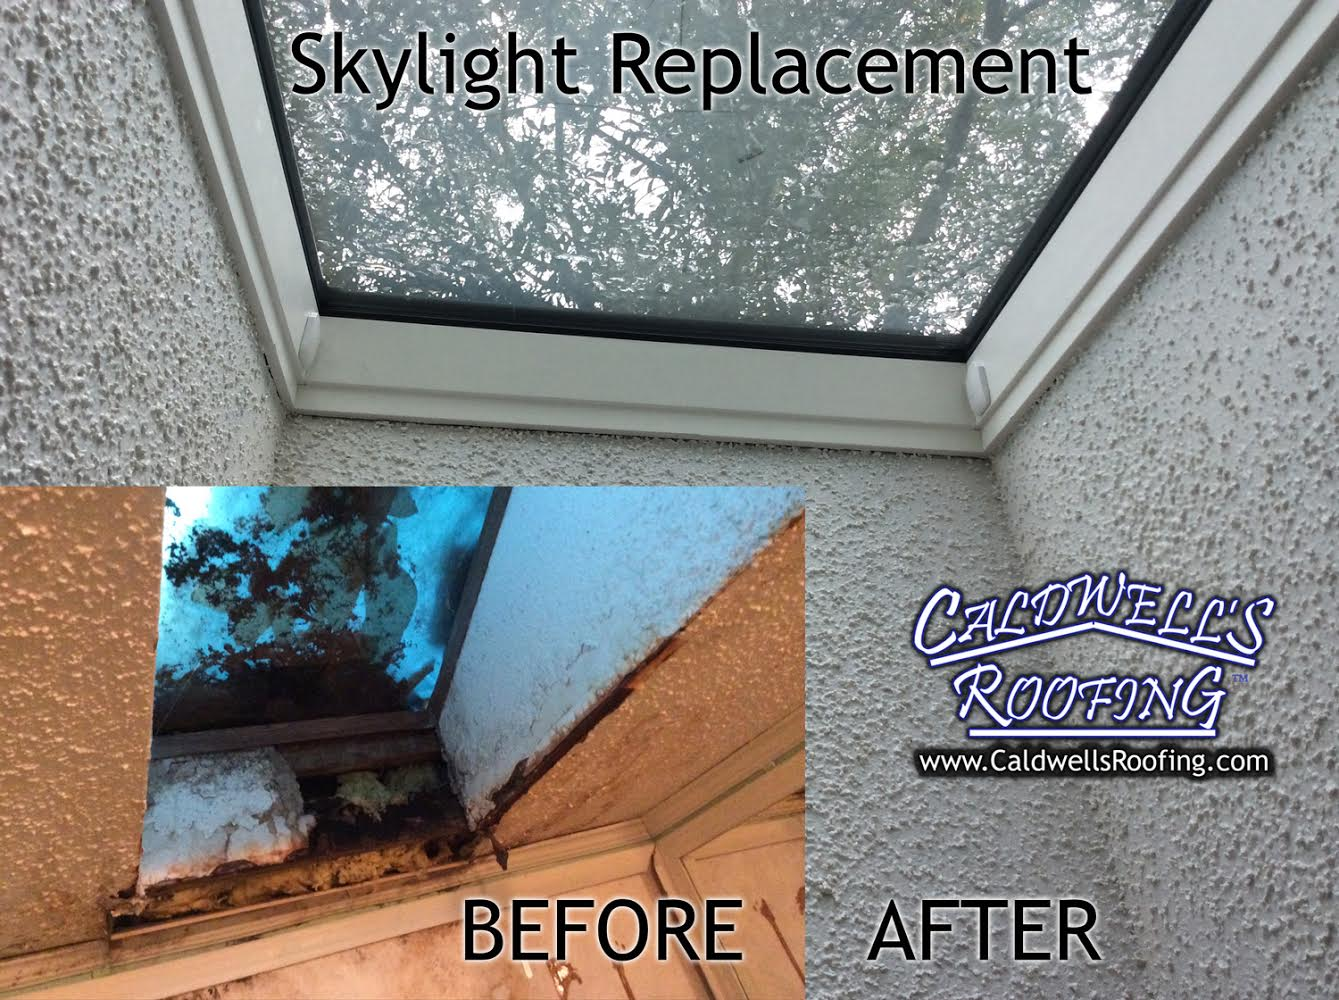 Before/After Picture of Skylight Replacement